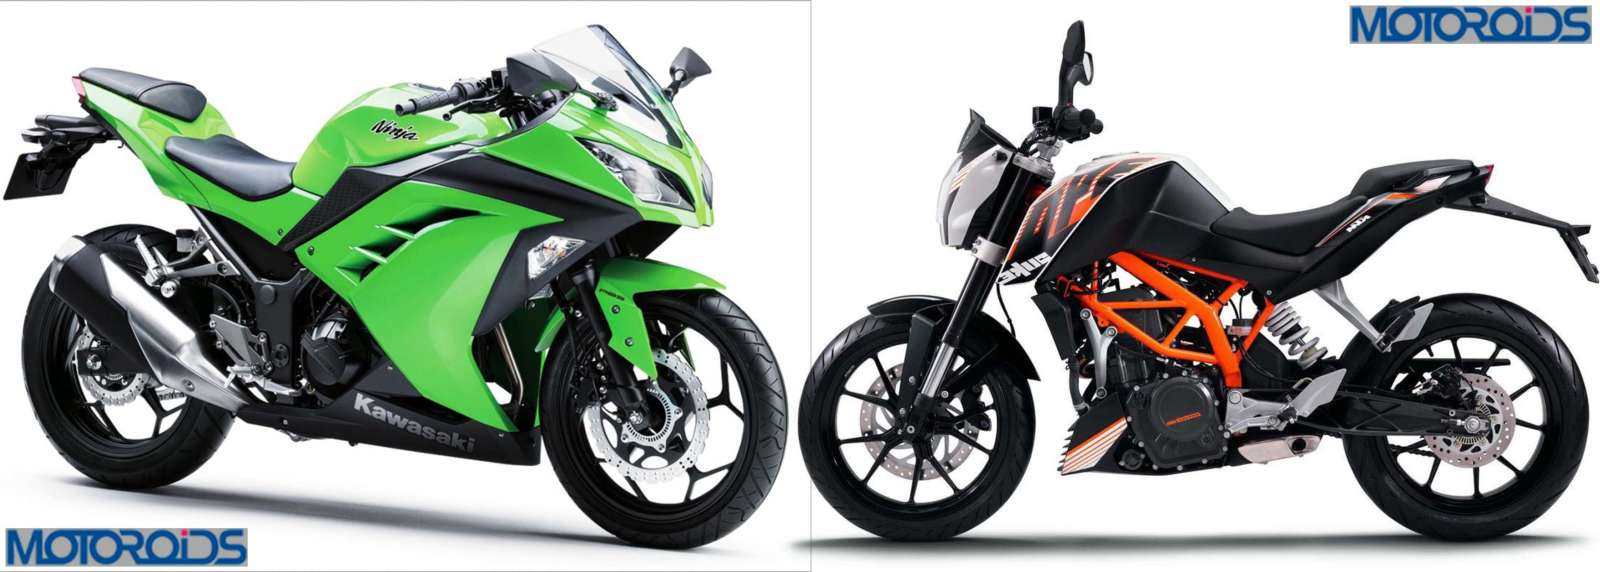 CONFIRMED: KTM Duke 390 & Kawasaki Ninja 300R to be unveiled in India ...